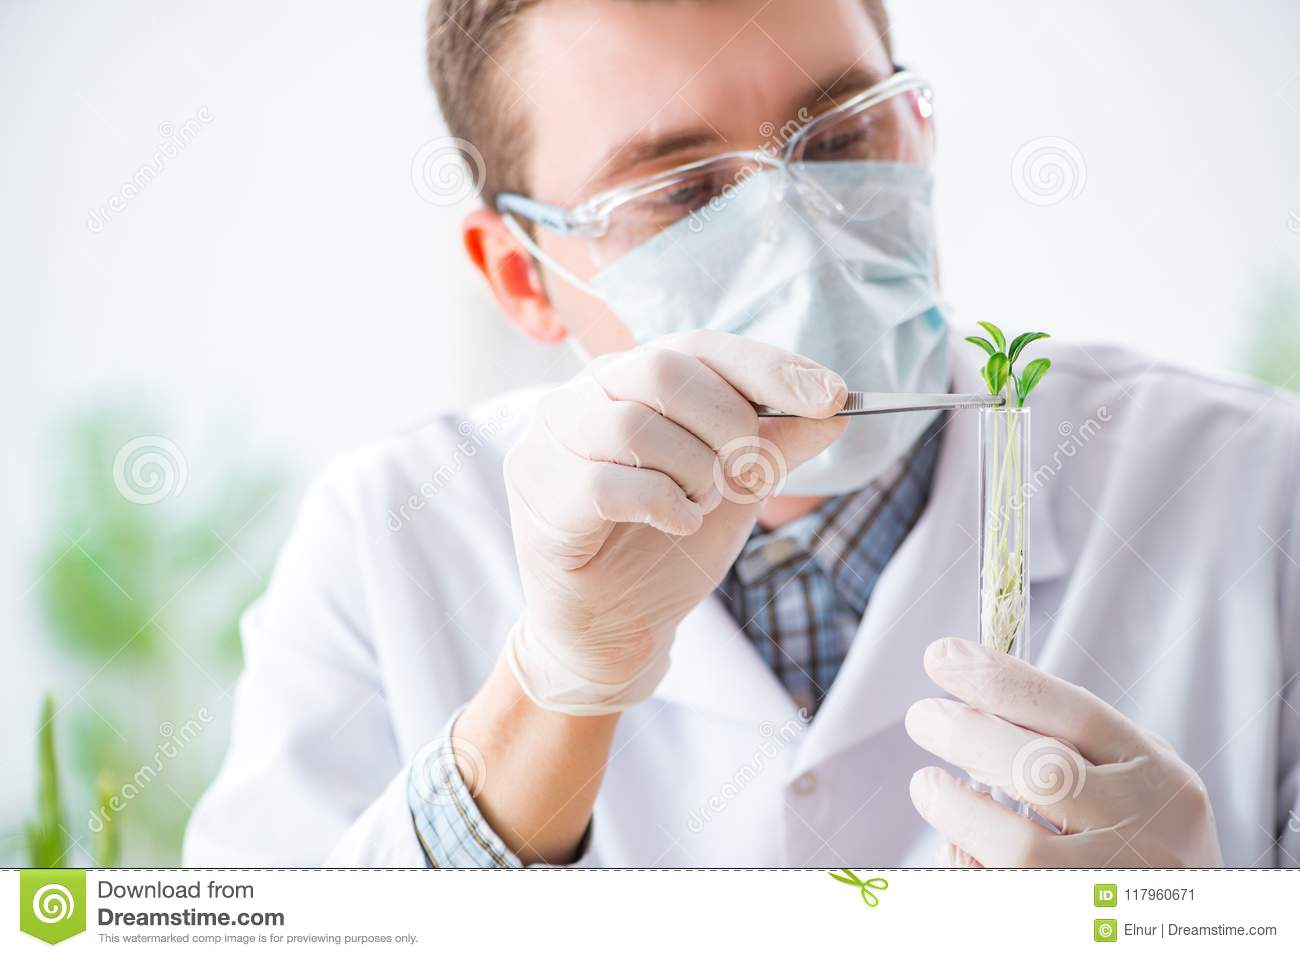 The Male Biochemist Working In The Lab On Plants Stock Image Image